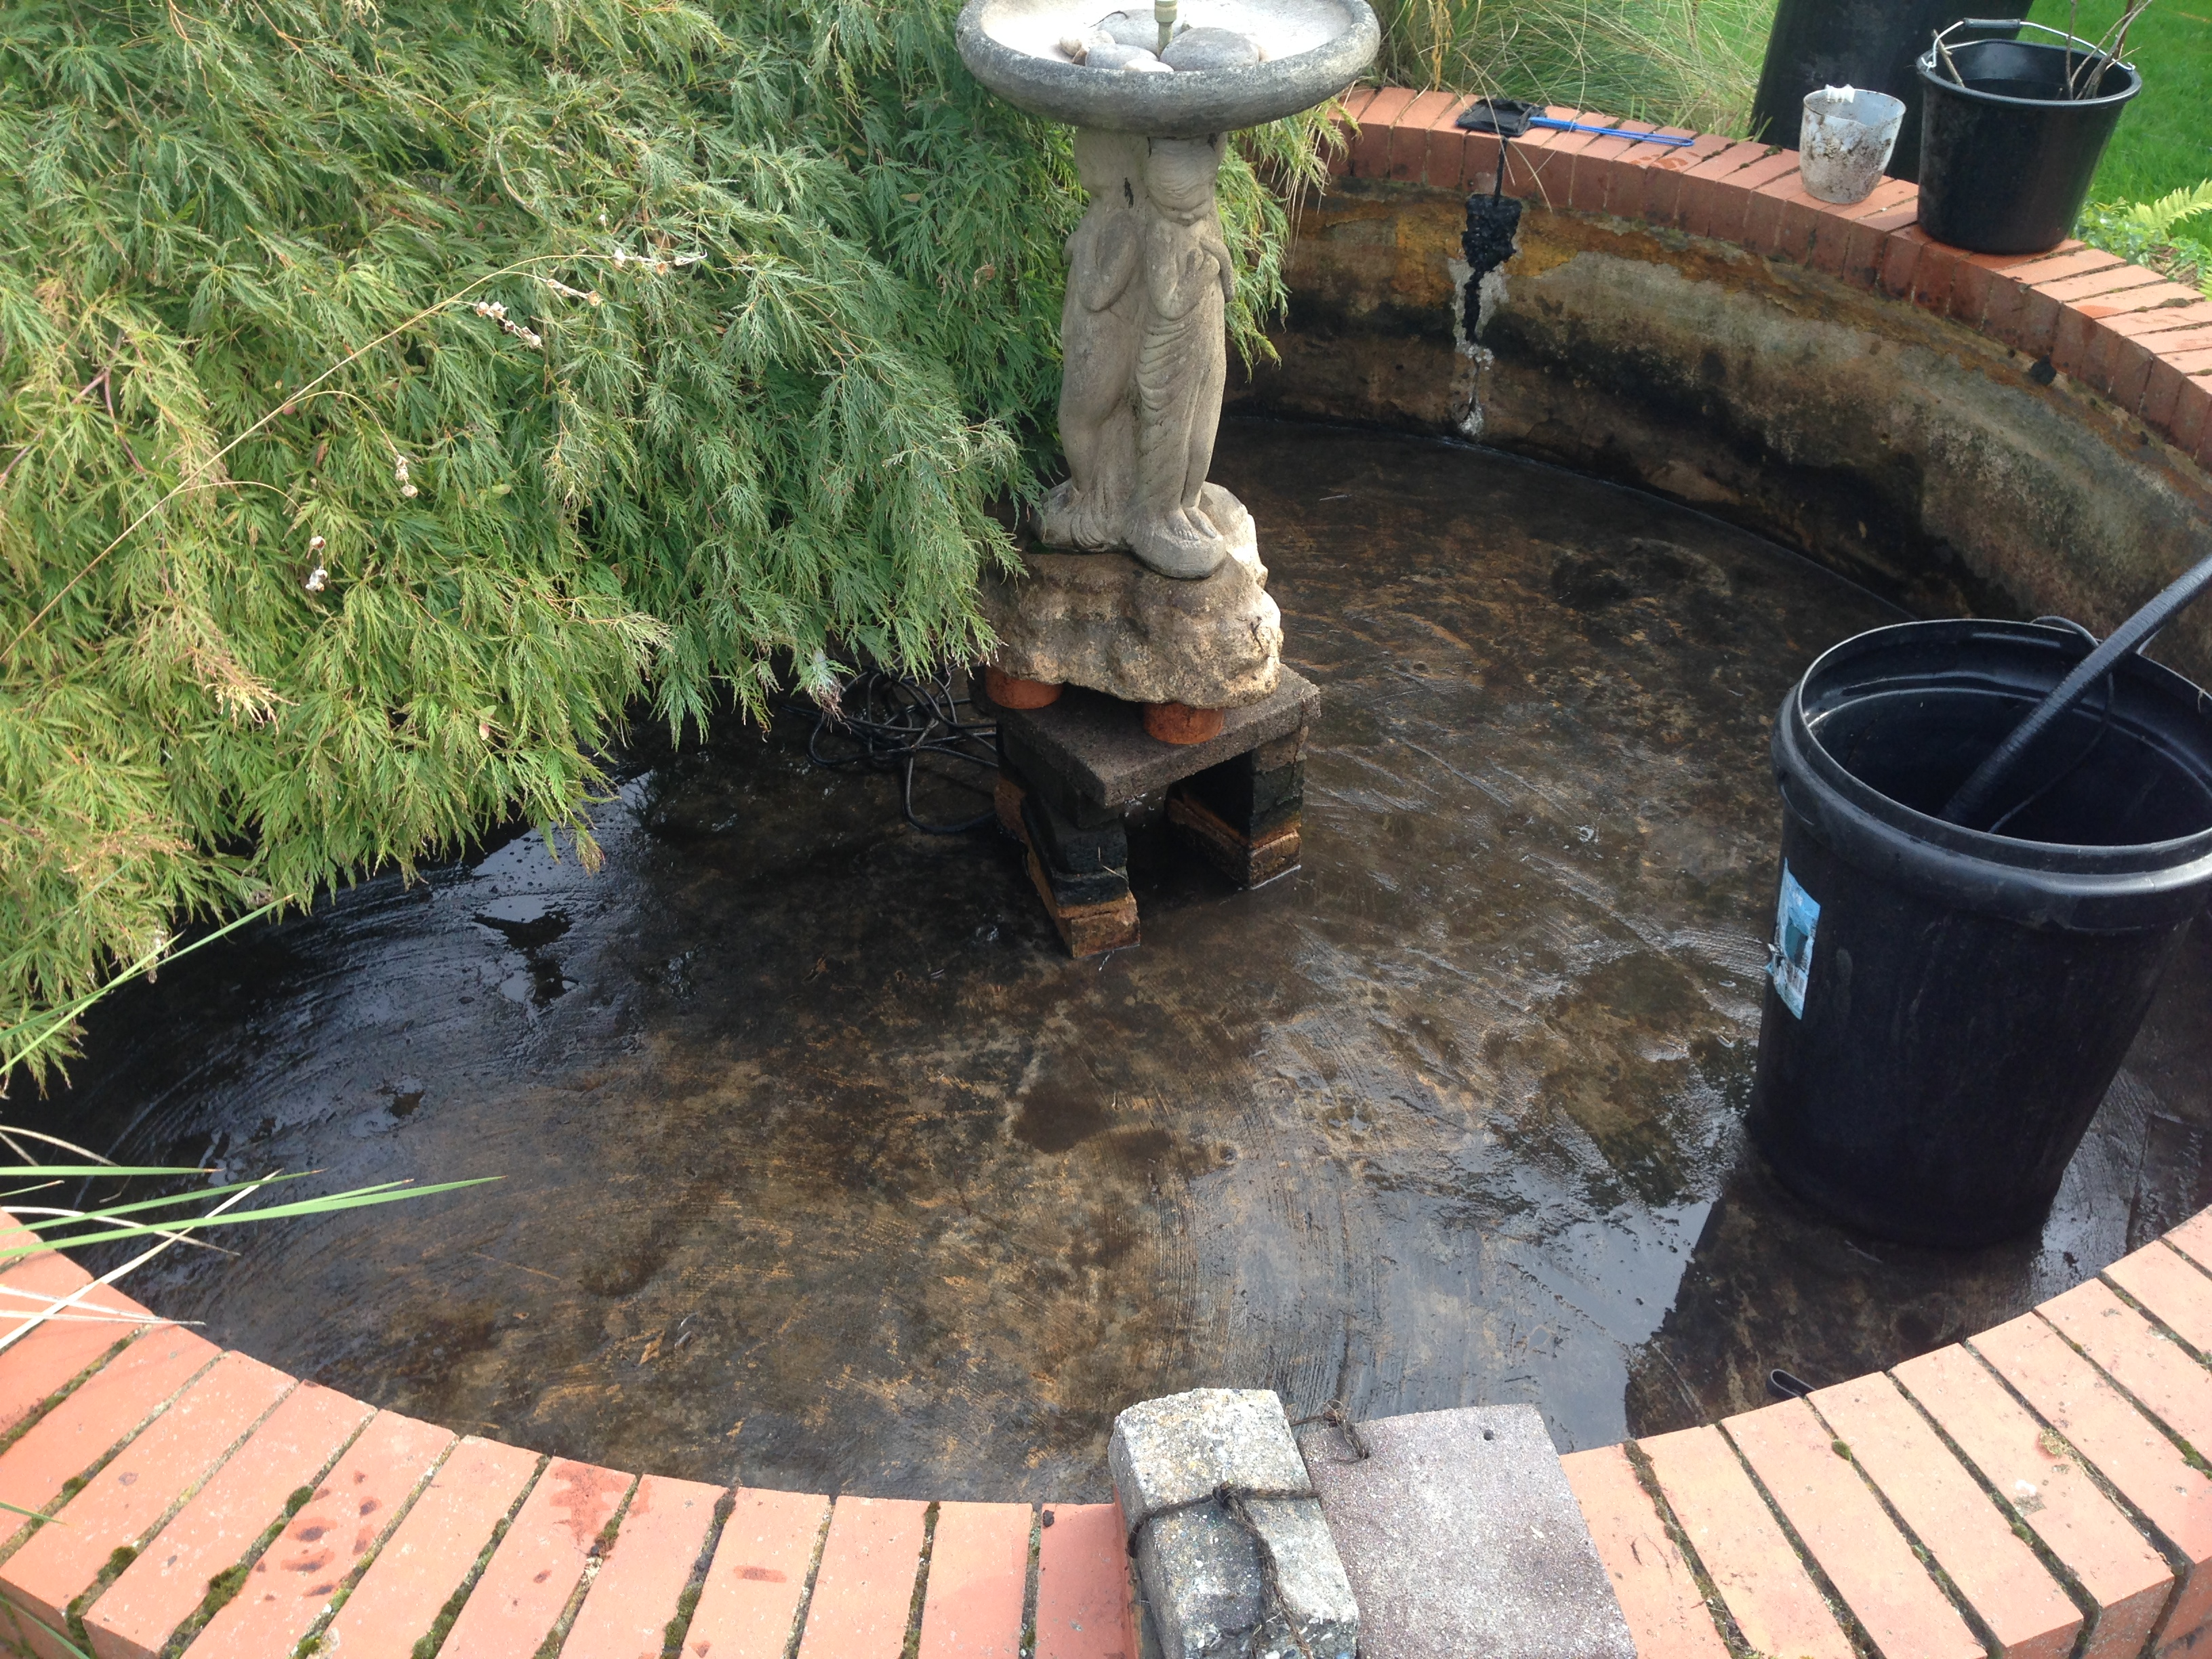 Pond cleaning pond repair letchworth garden city maltby for Garden pond cleaning